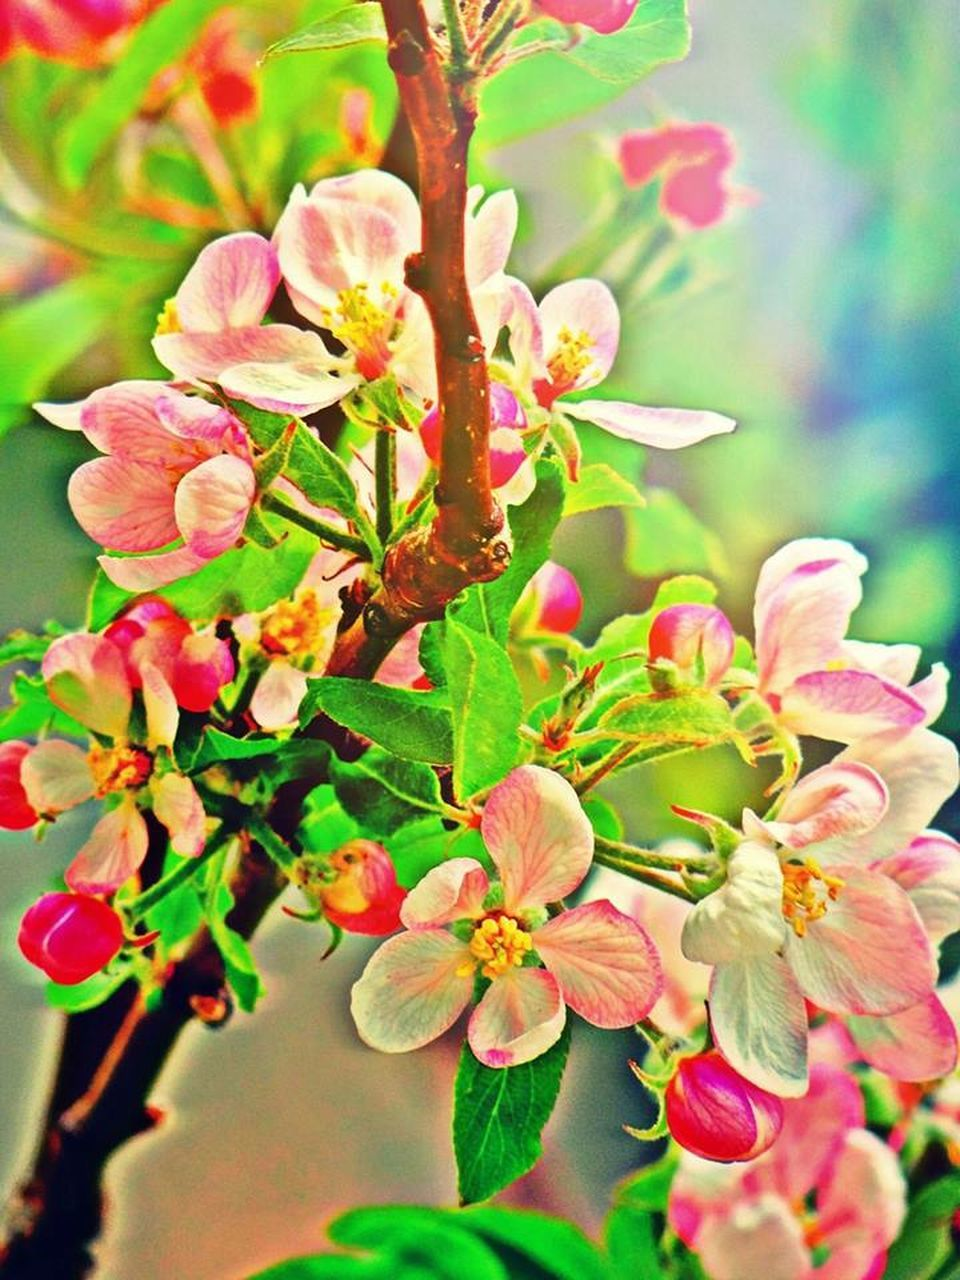 growth, nature, flower, beauty in nature, plant, no people, fragility, outdoors, pink color, freshness, branch, petal, leaf, close-up, day, springtime, blooming, tree, flower head